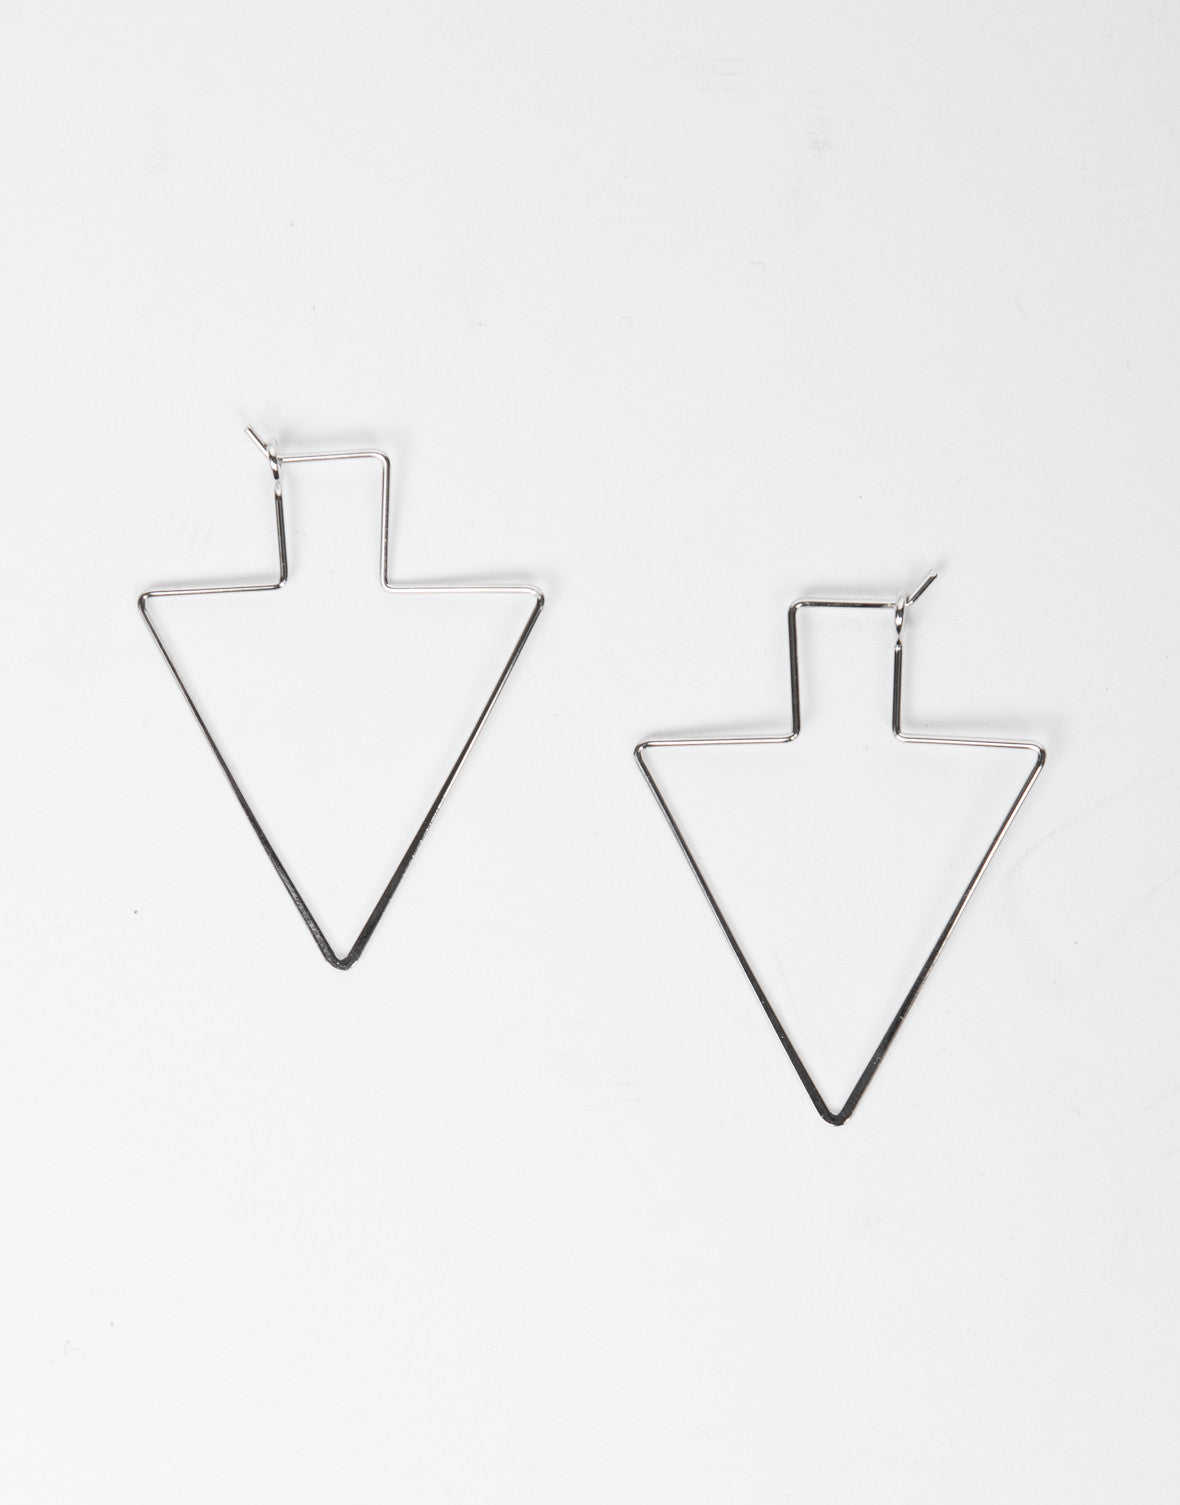 Wired Arrow Earrings